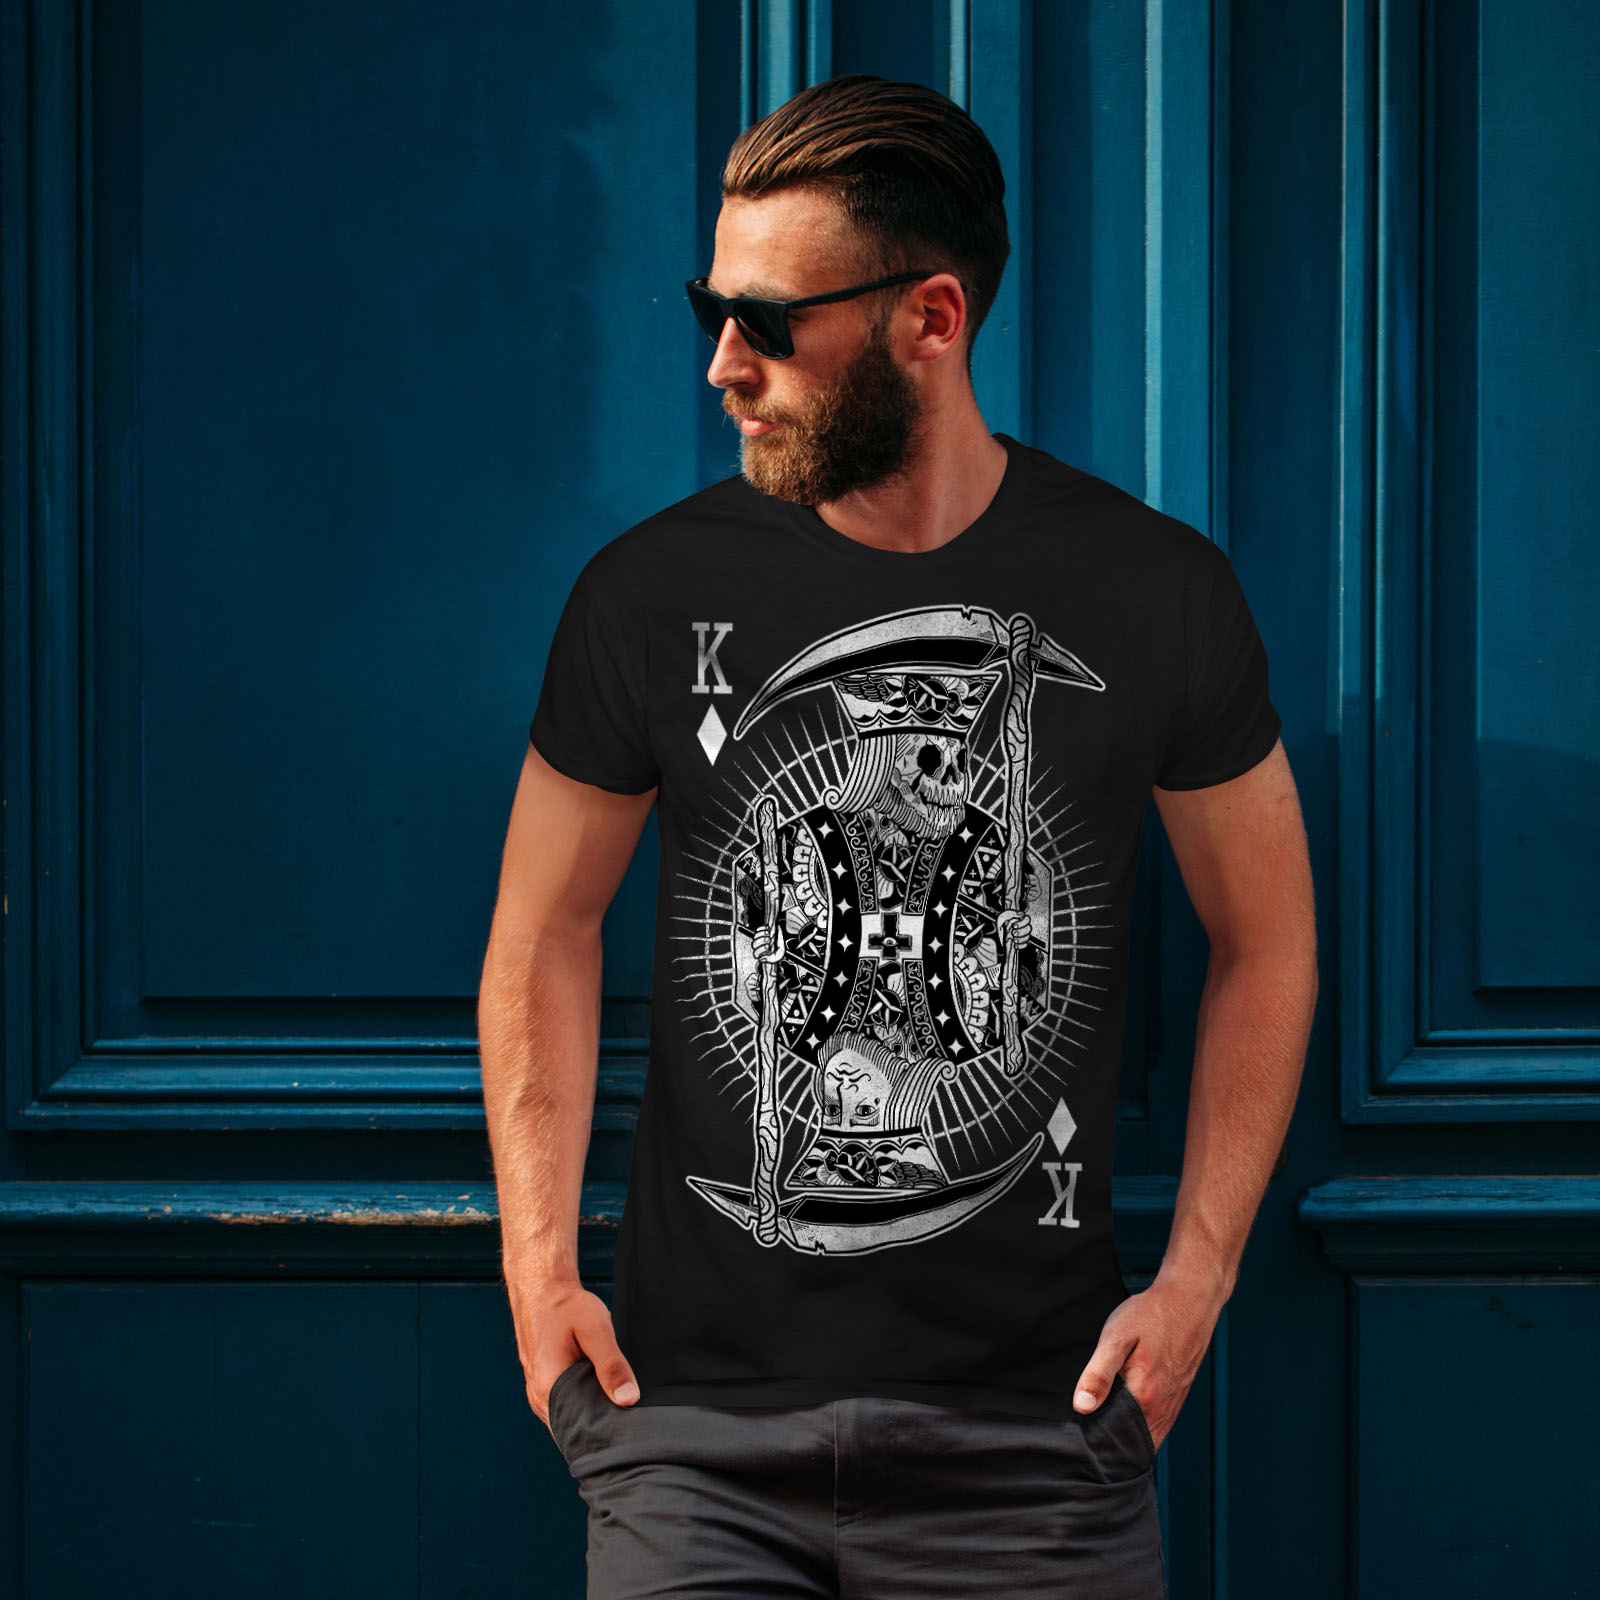 Wellcoda-Poker-Horror-King-Skull-Mens-T-shirt-Graphic-Design-Printed-Tee thumbnail 4